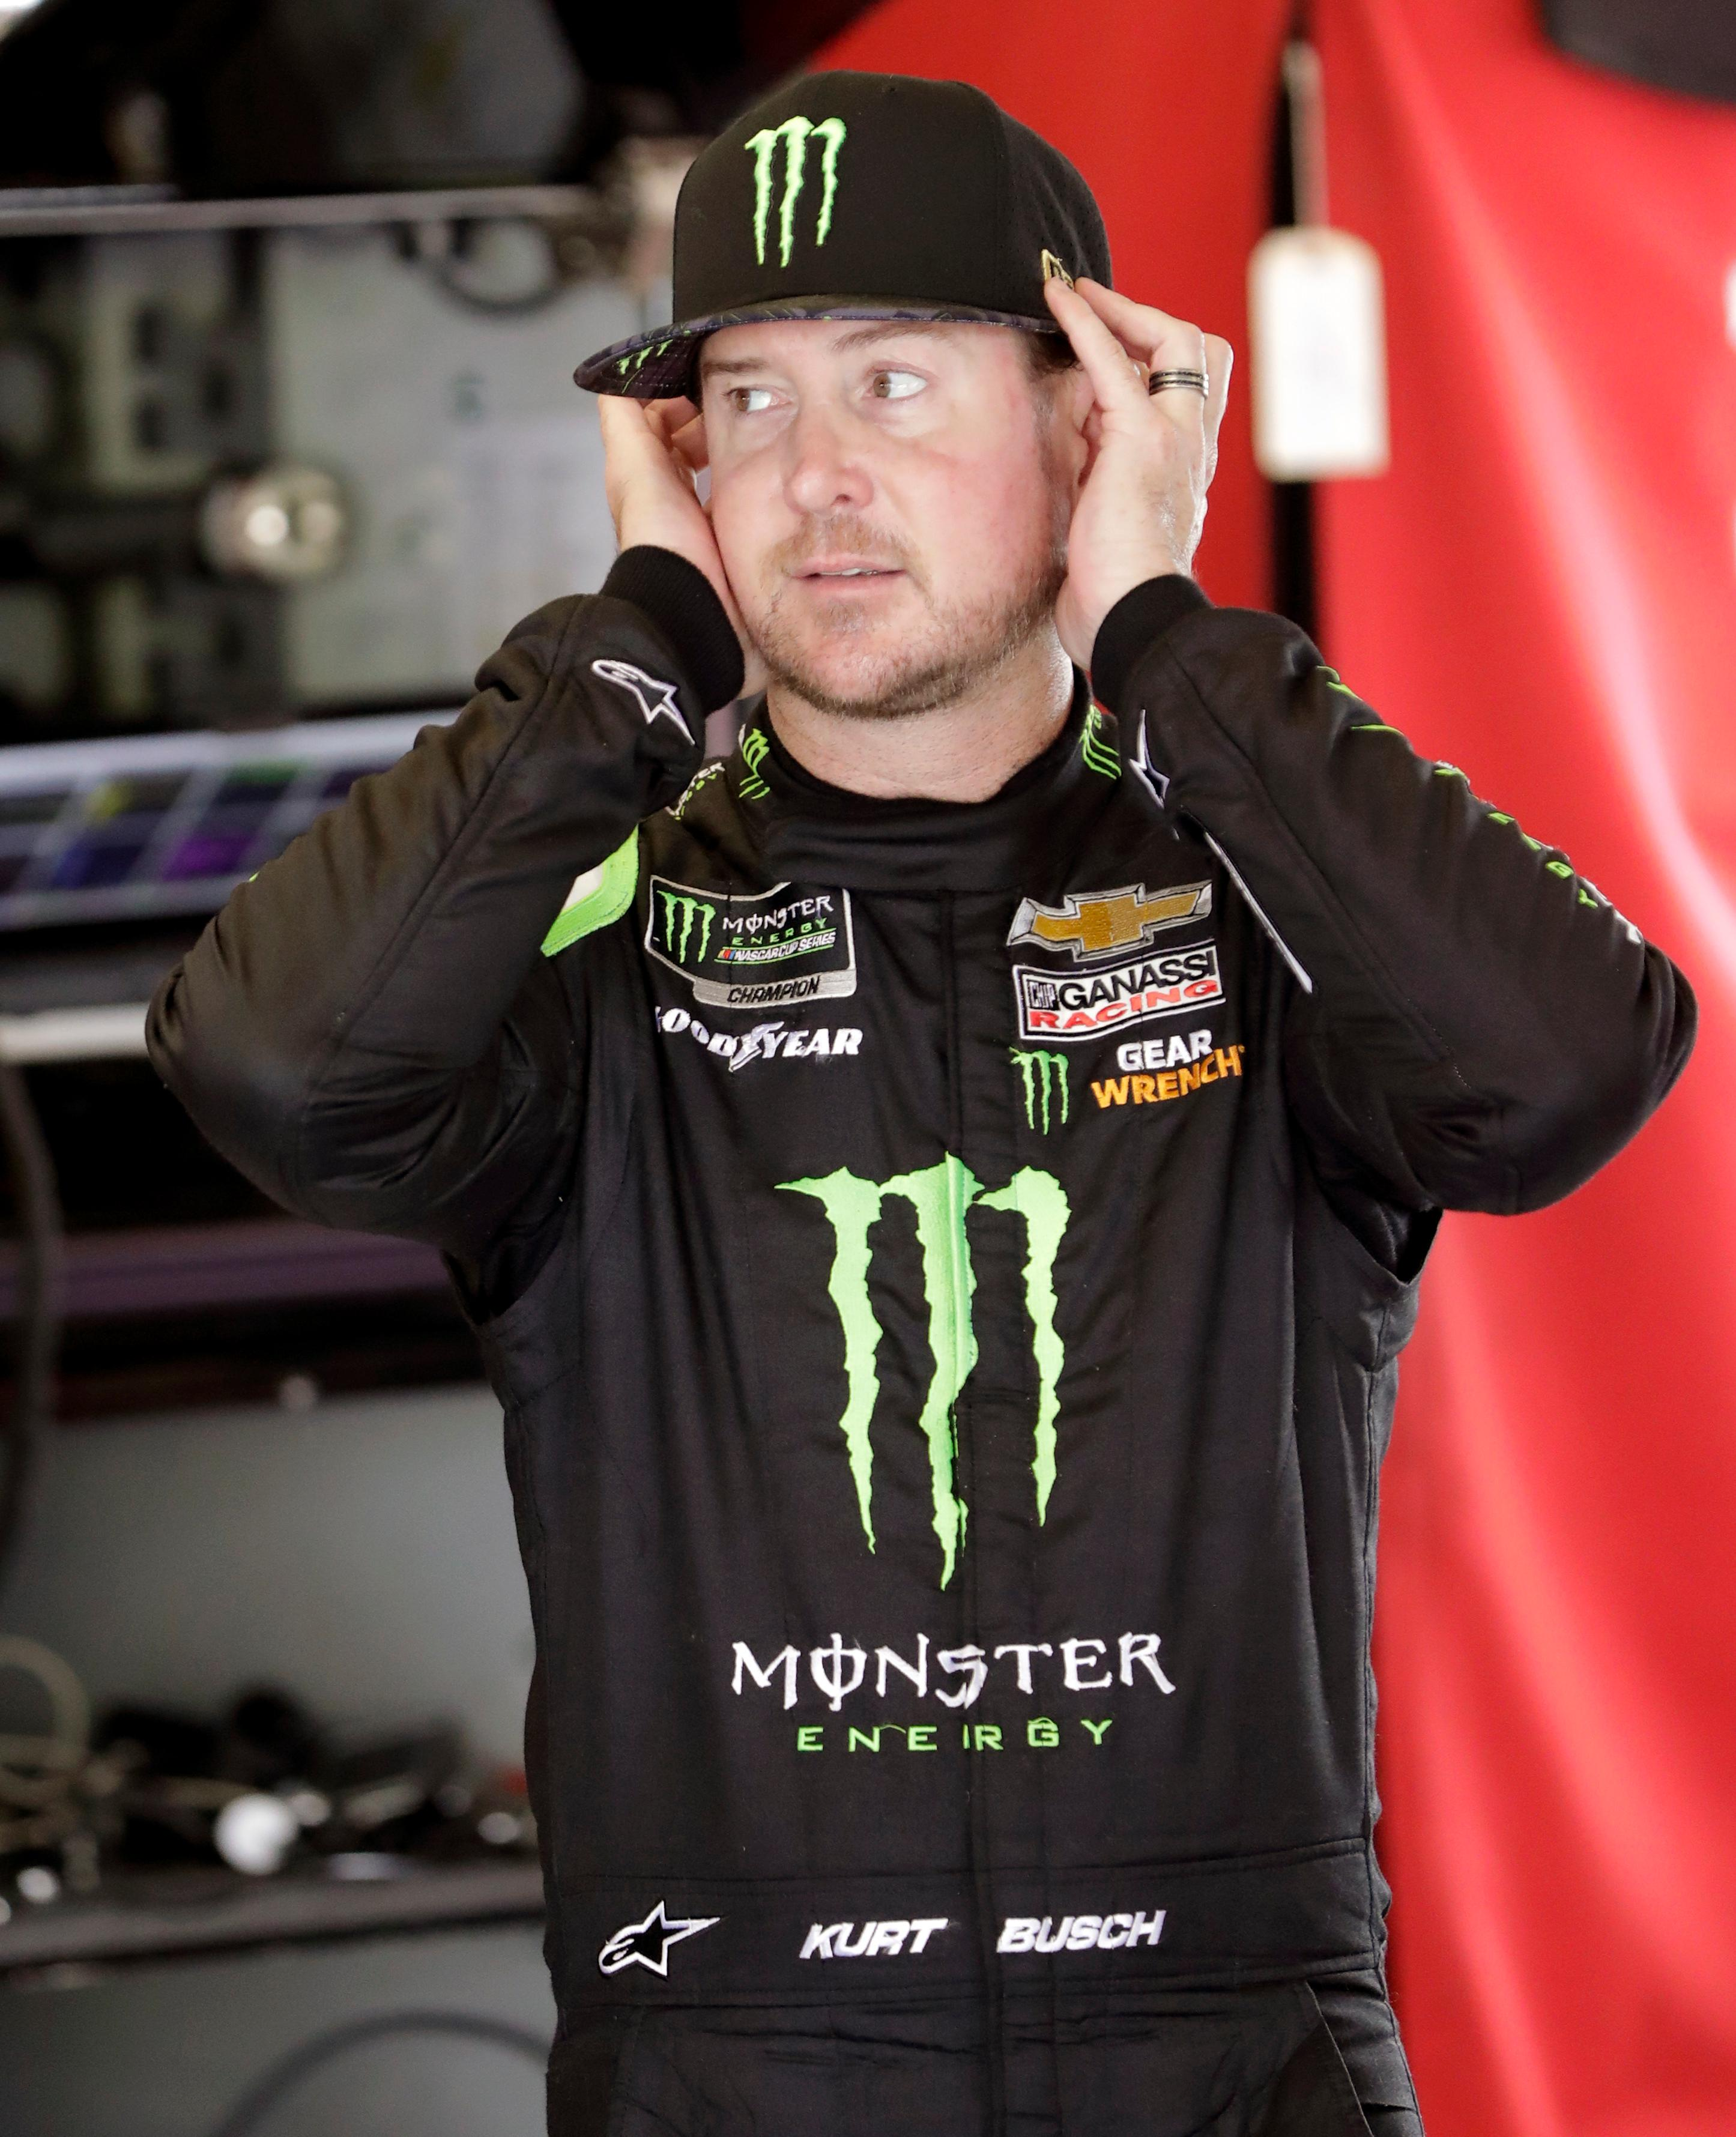 Kurt Busch adjusts his hat after driving in a NASCAR auto racing practice for the Daytona 500 at Daytona International Speedway, Saturday, Feb. 16, 2019, in Daytona Beach, Fla. (AP Photo/John Raoux)